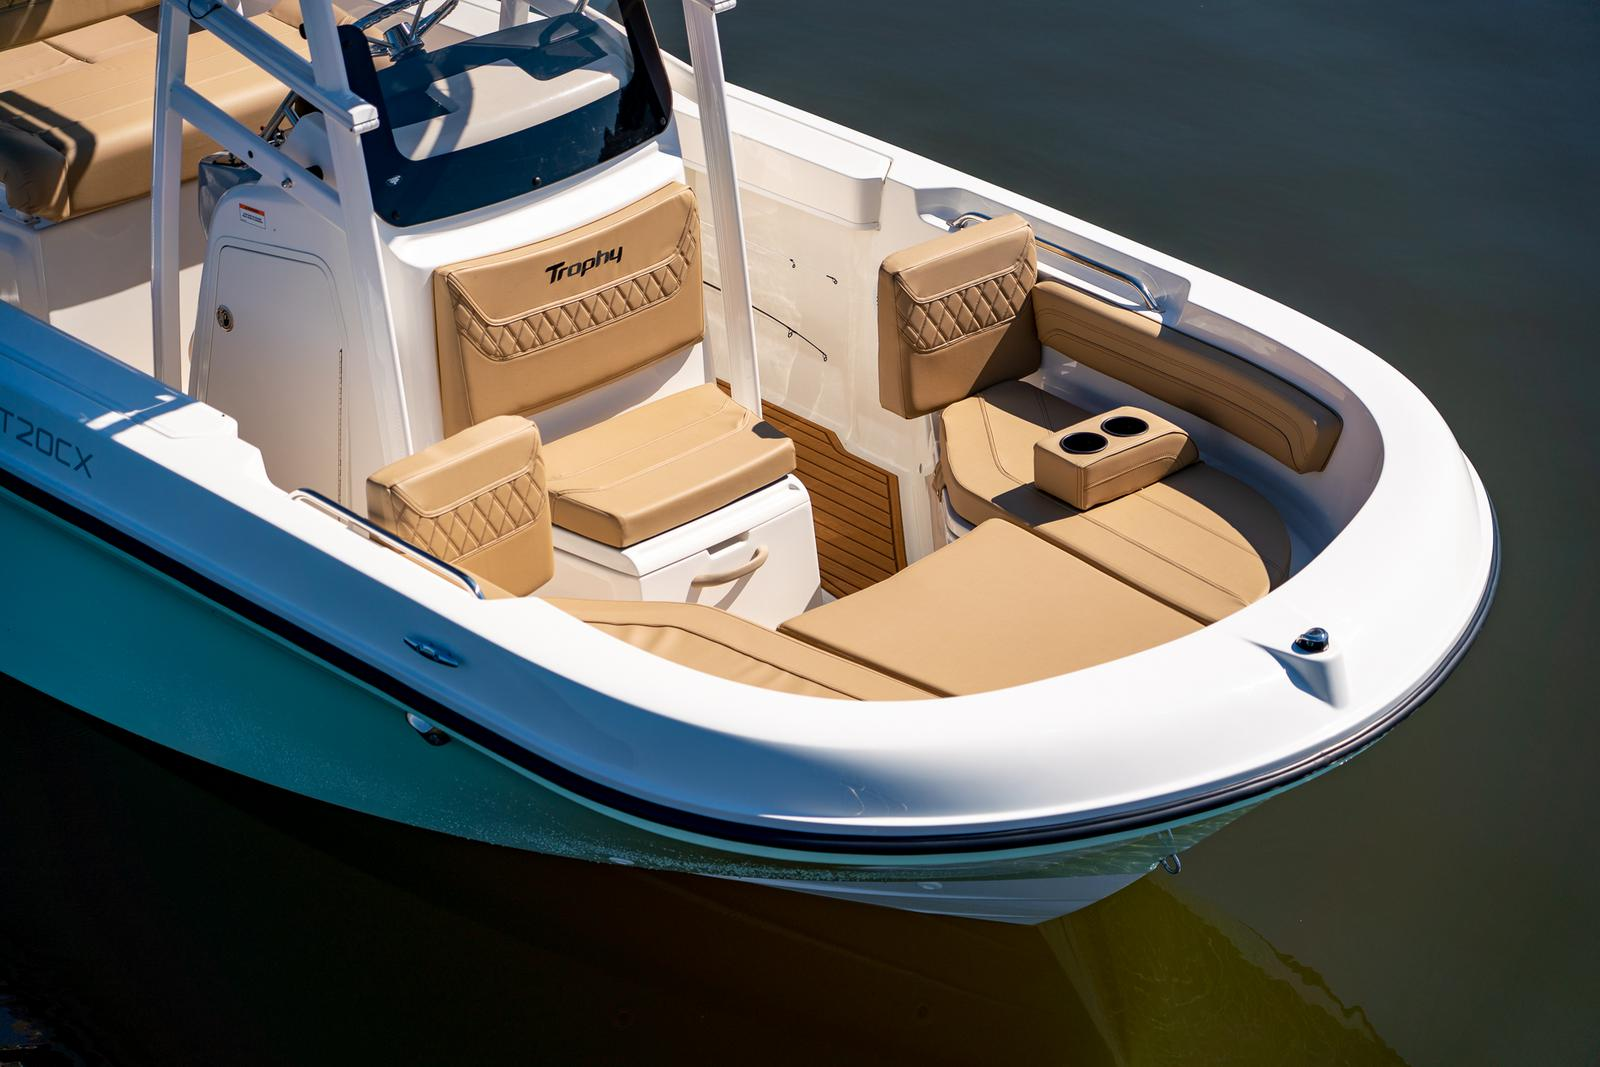 2021 Bayliner boat for sale, model of the boat is T20CC & Image # 4 of 7